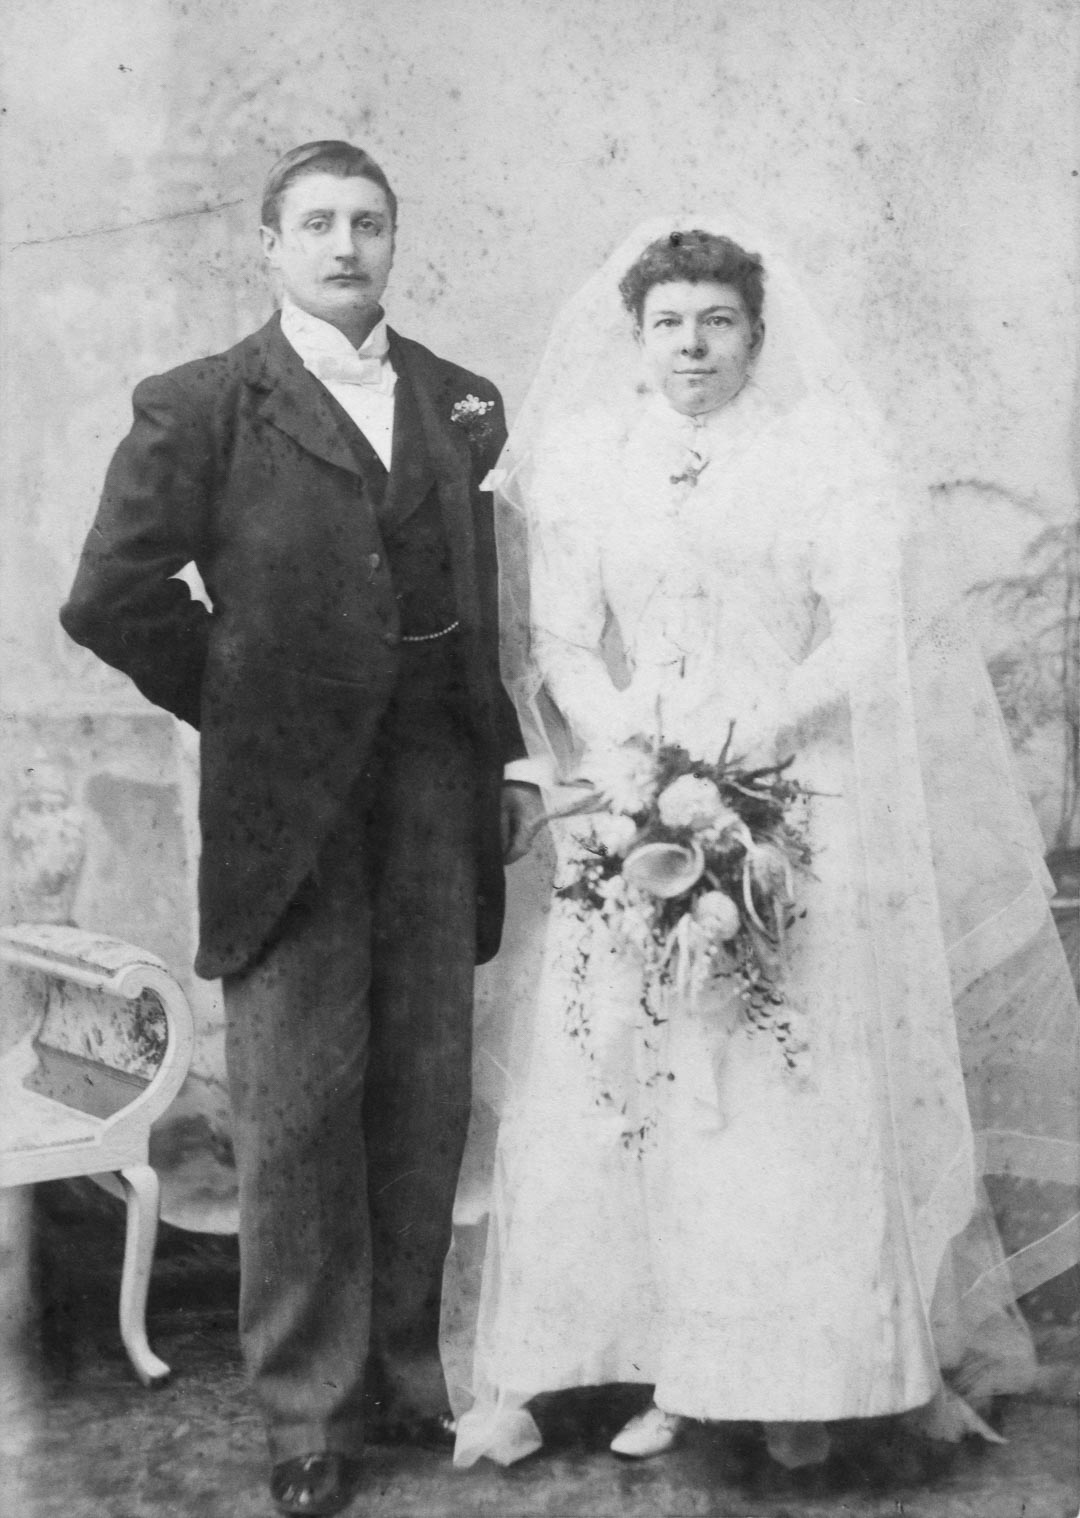 Fanny Catherine Draper, 1866 -1944. Daughter of Charles and Catherine Draper.  Pictured with her husband William Henry Smith.  They were married at Coton in the Elms, Derbyshire in 1896